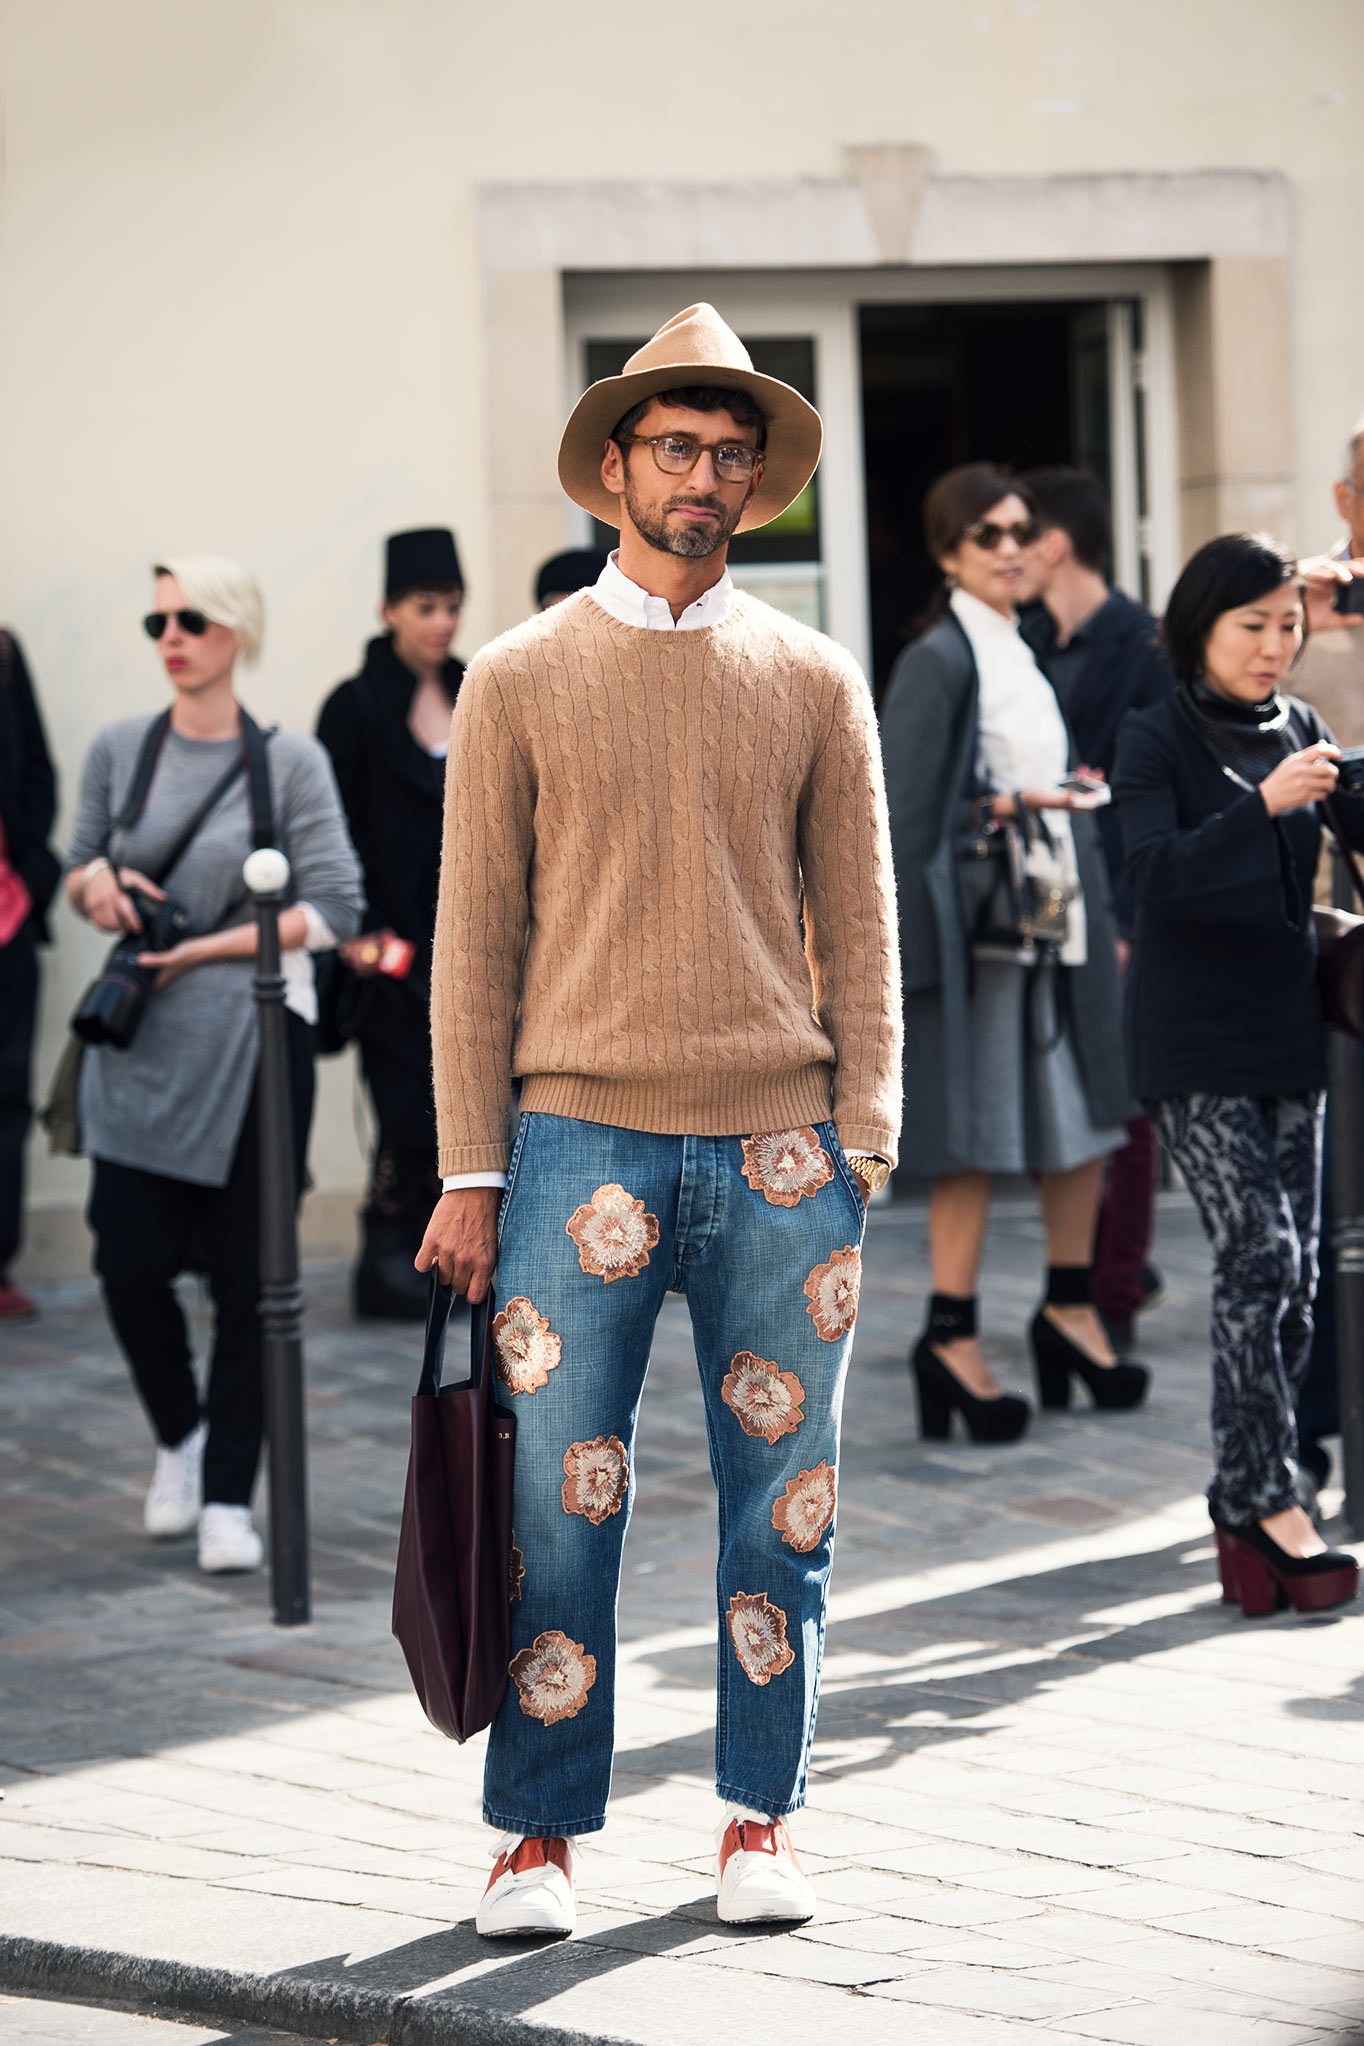 Simone Marchetti at Paris Fashion Week Spring/Summer 2015